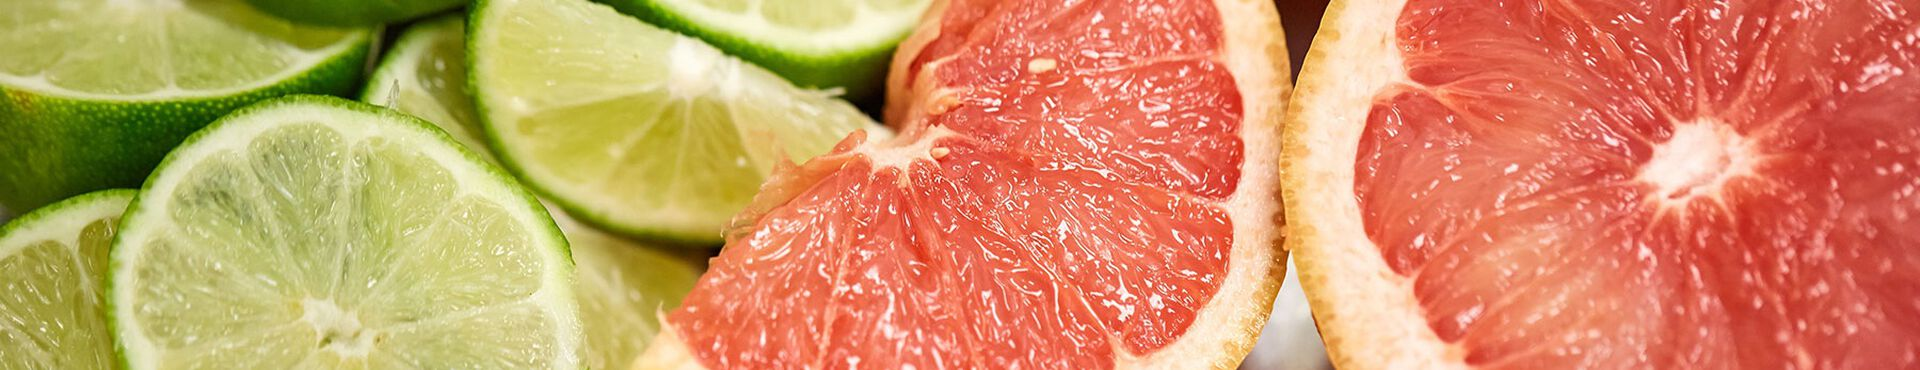 Banner - What Does Citrus Do for My Skin?